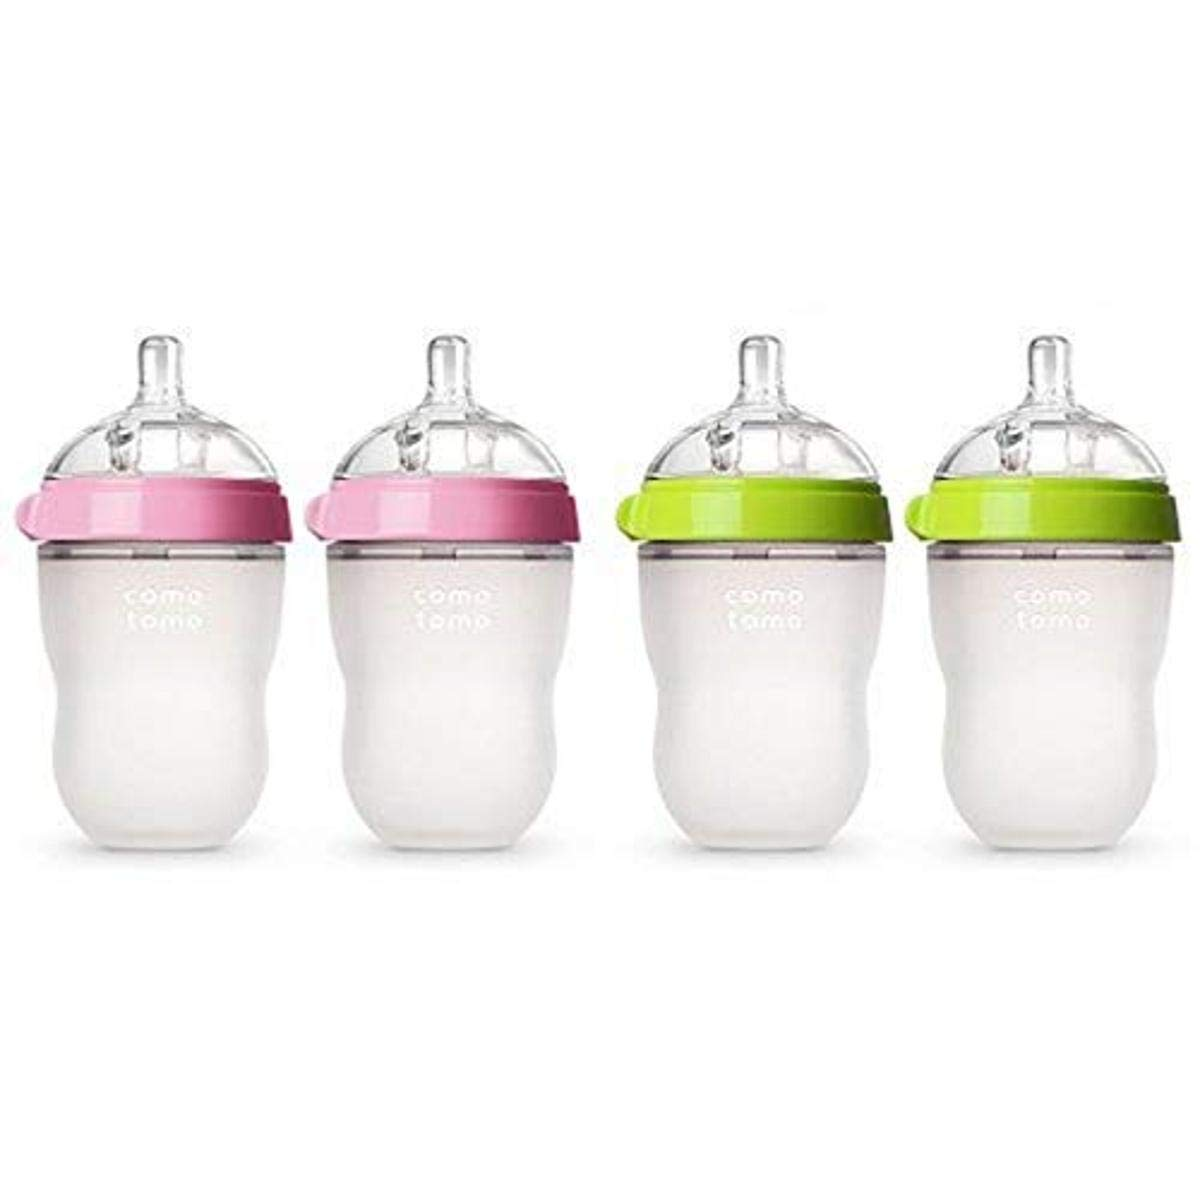 Comotomo Baby Bottle, Pink, 8 Ounce, 2 Count and Baby Bottle, Green, 8 Ounce, 2 Count